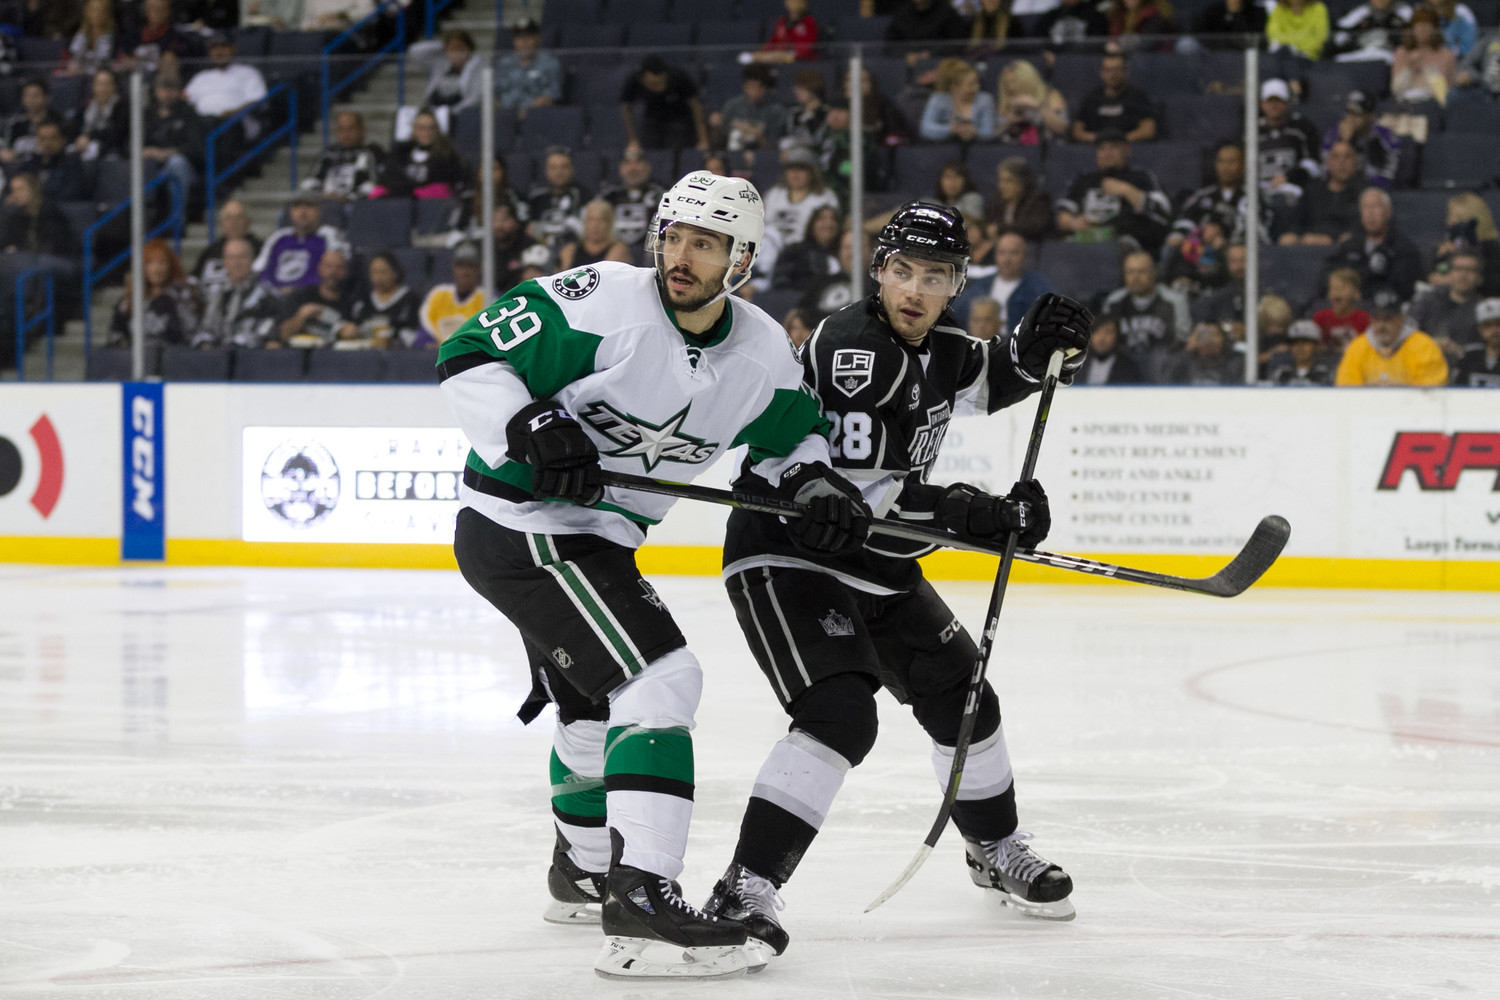 Samuel Laberge scored in double overtime and the Texas Stars beat the Ontario Reign 5-4 in Game 2 of the Pacific Division Semifinals on Sunday night.